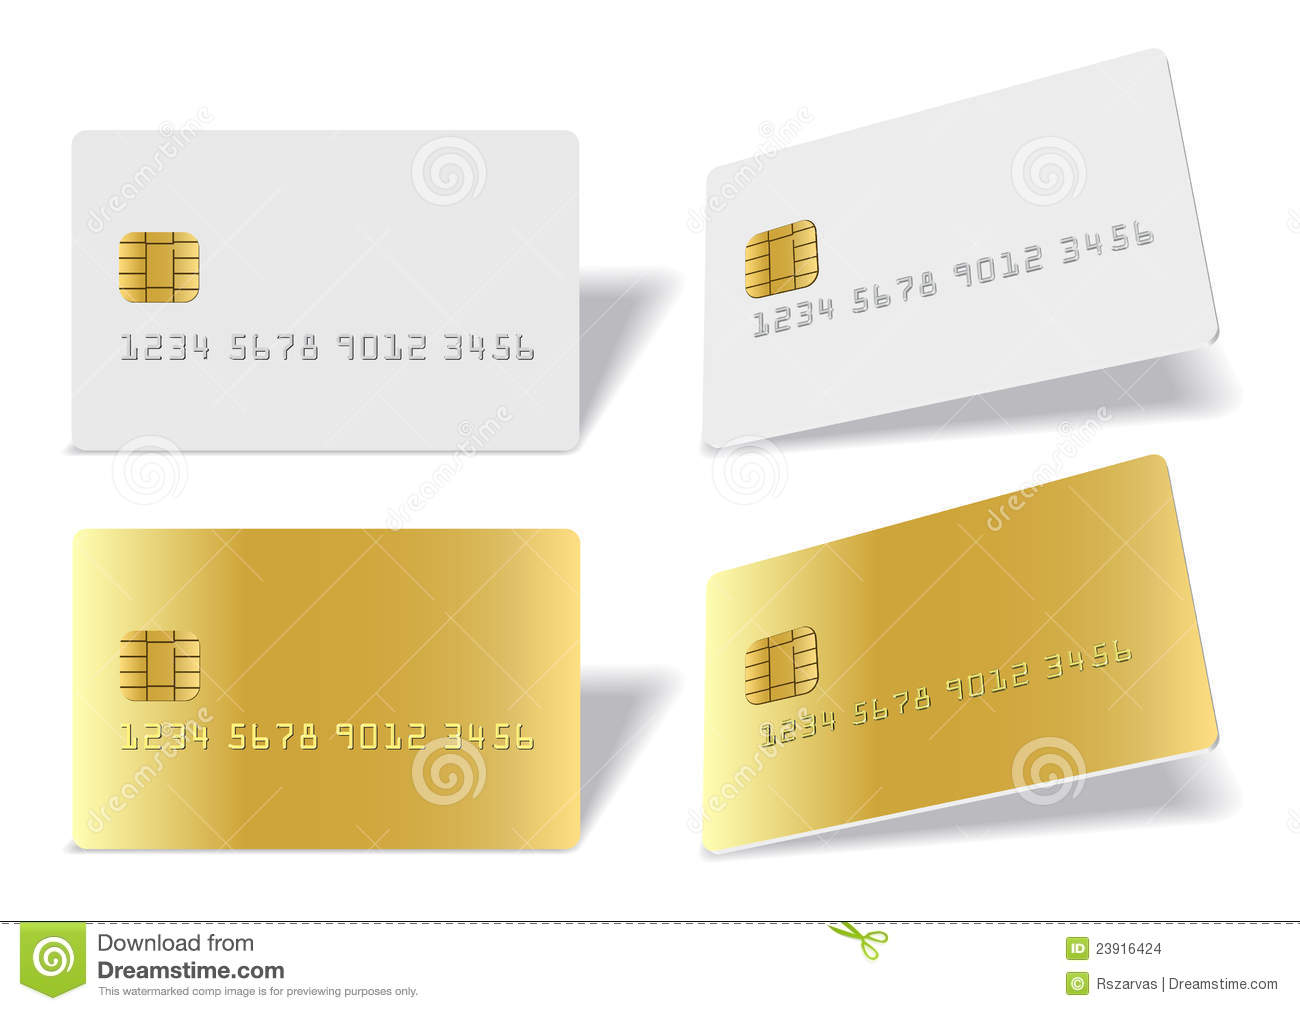 Business Card Dvd Blank Image collections - Card Design And Card ...